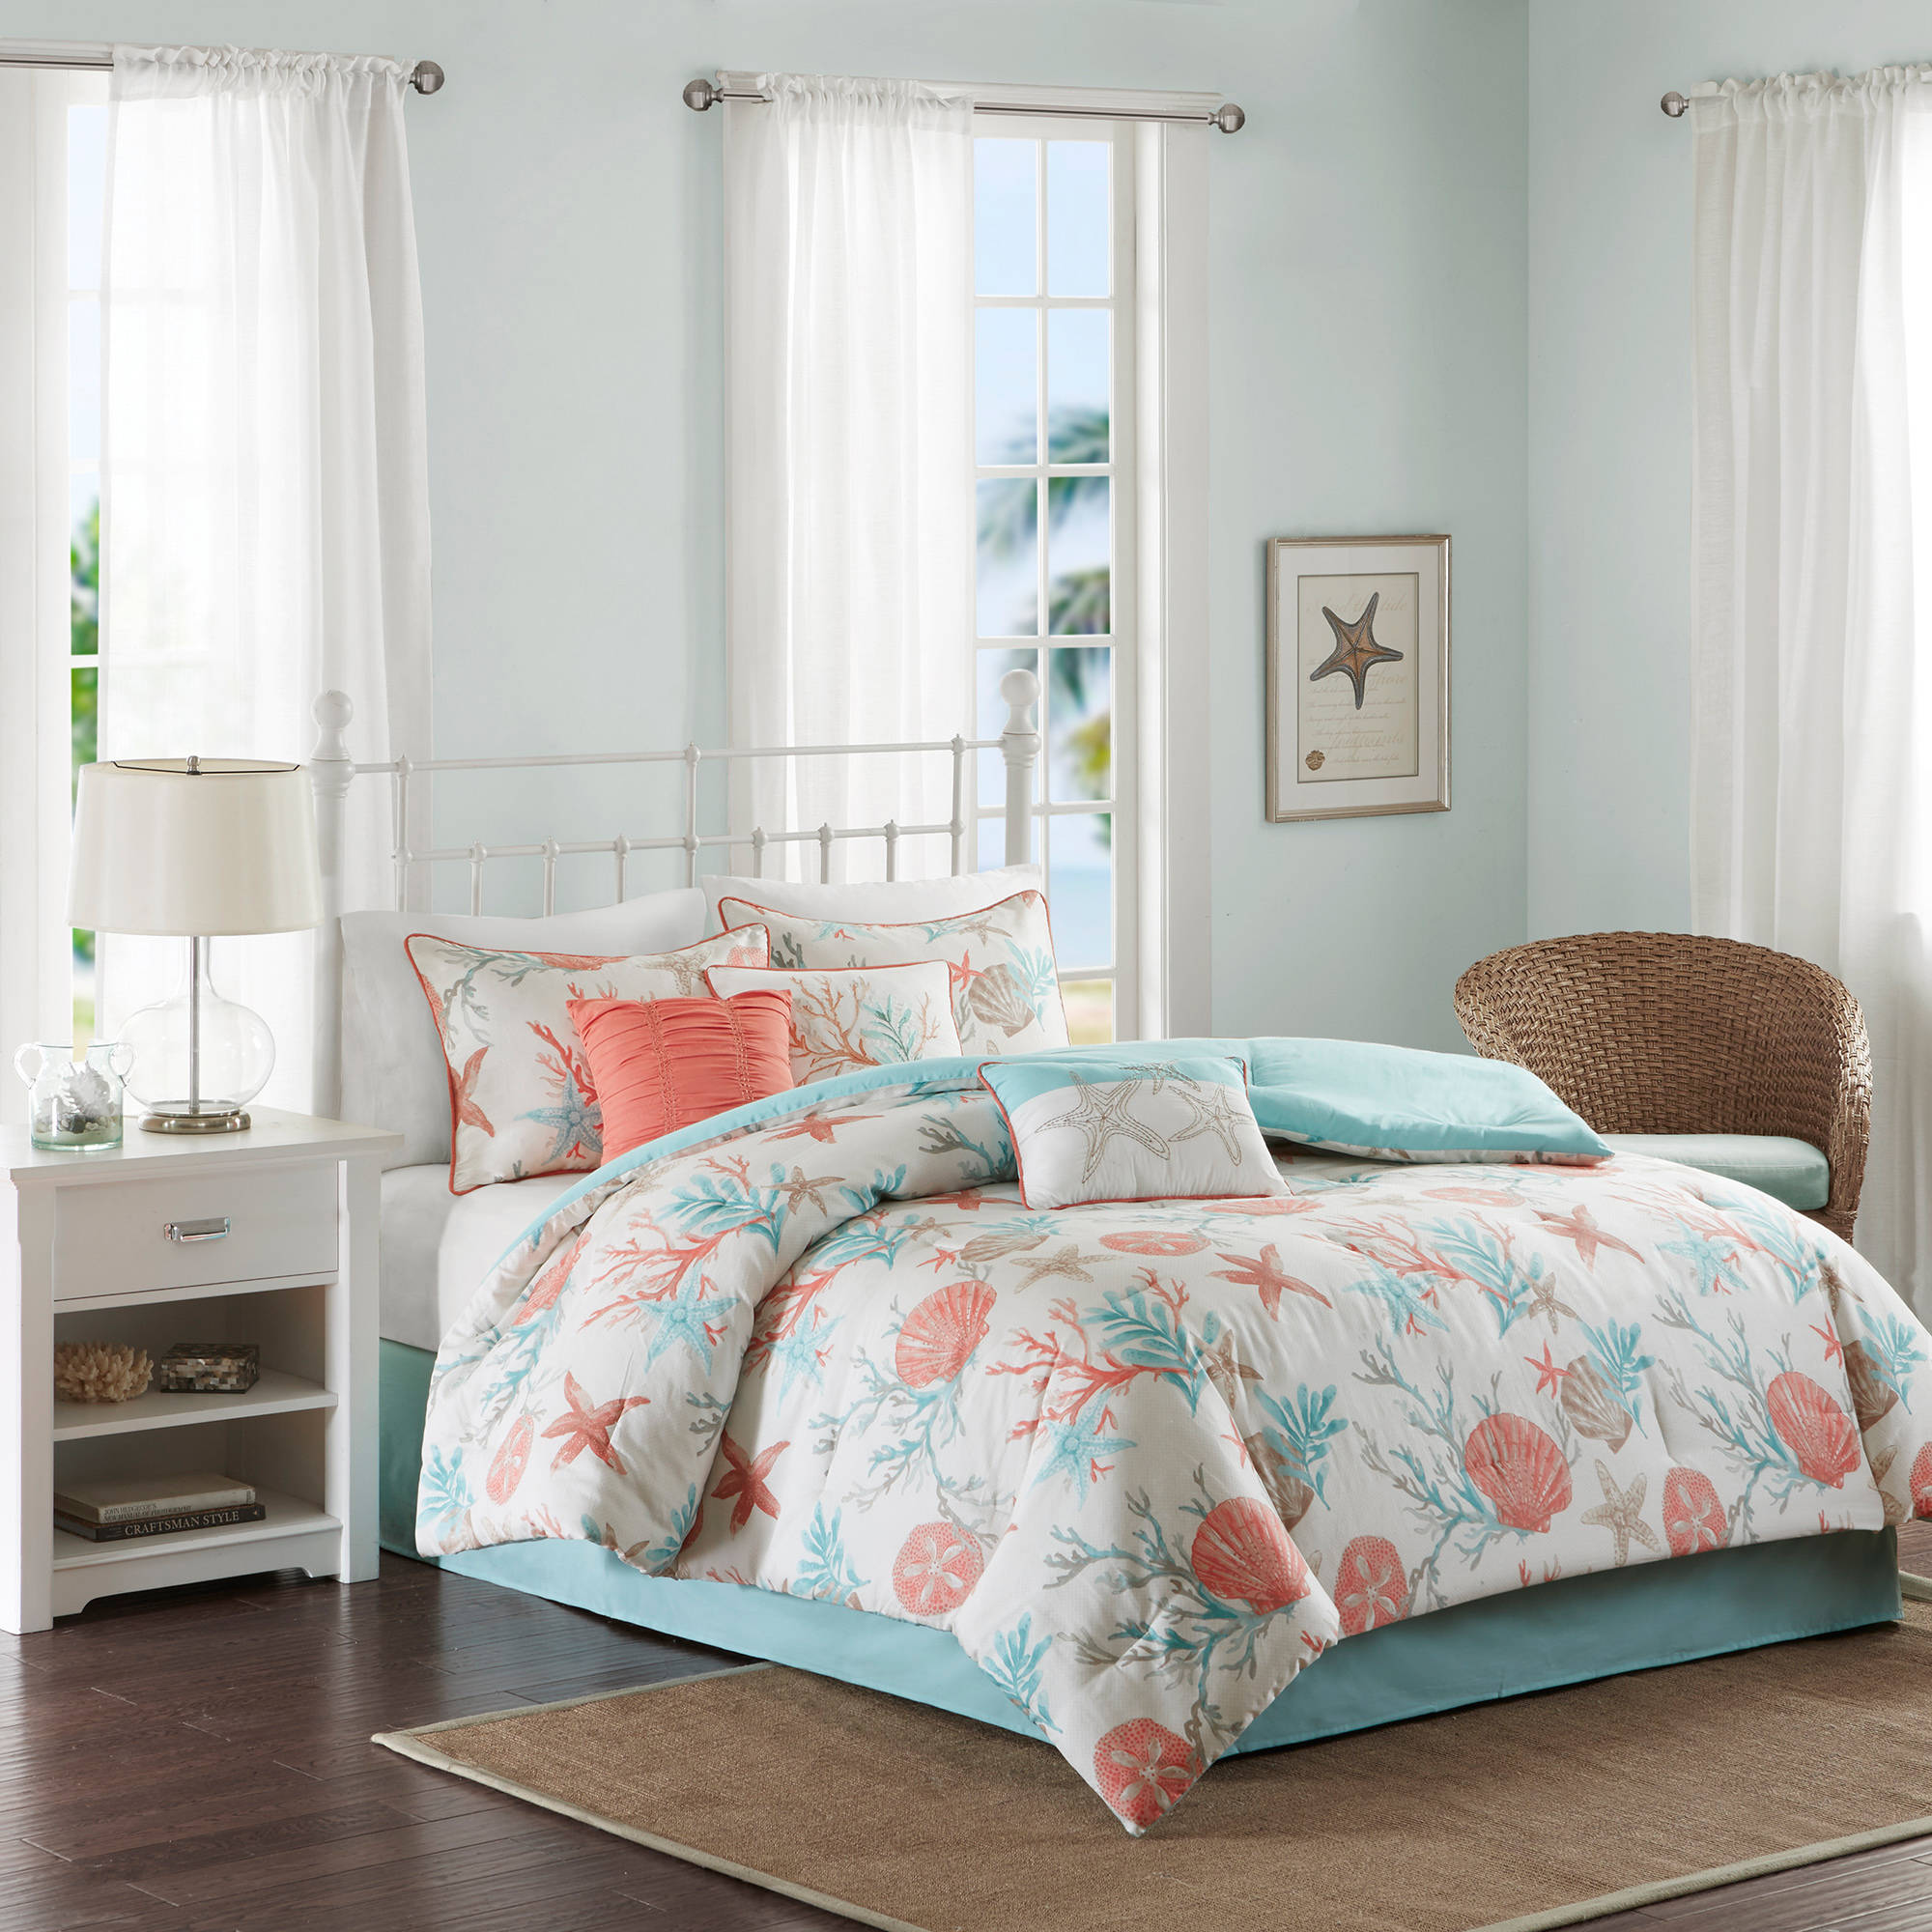 Home Essence Ocean View 7PC Cotton Sateen Printed Comforter Bedding Set